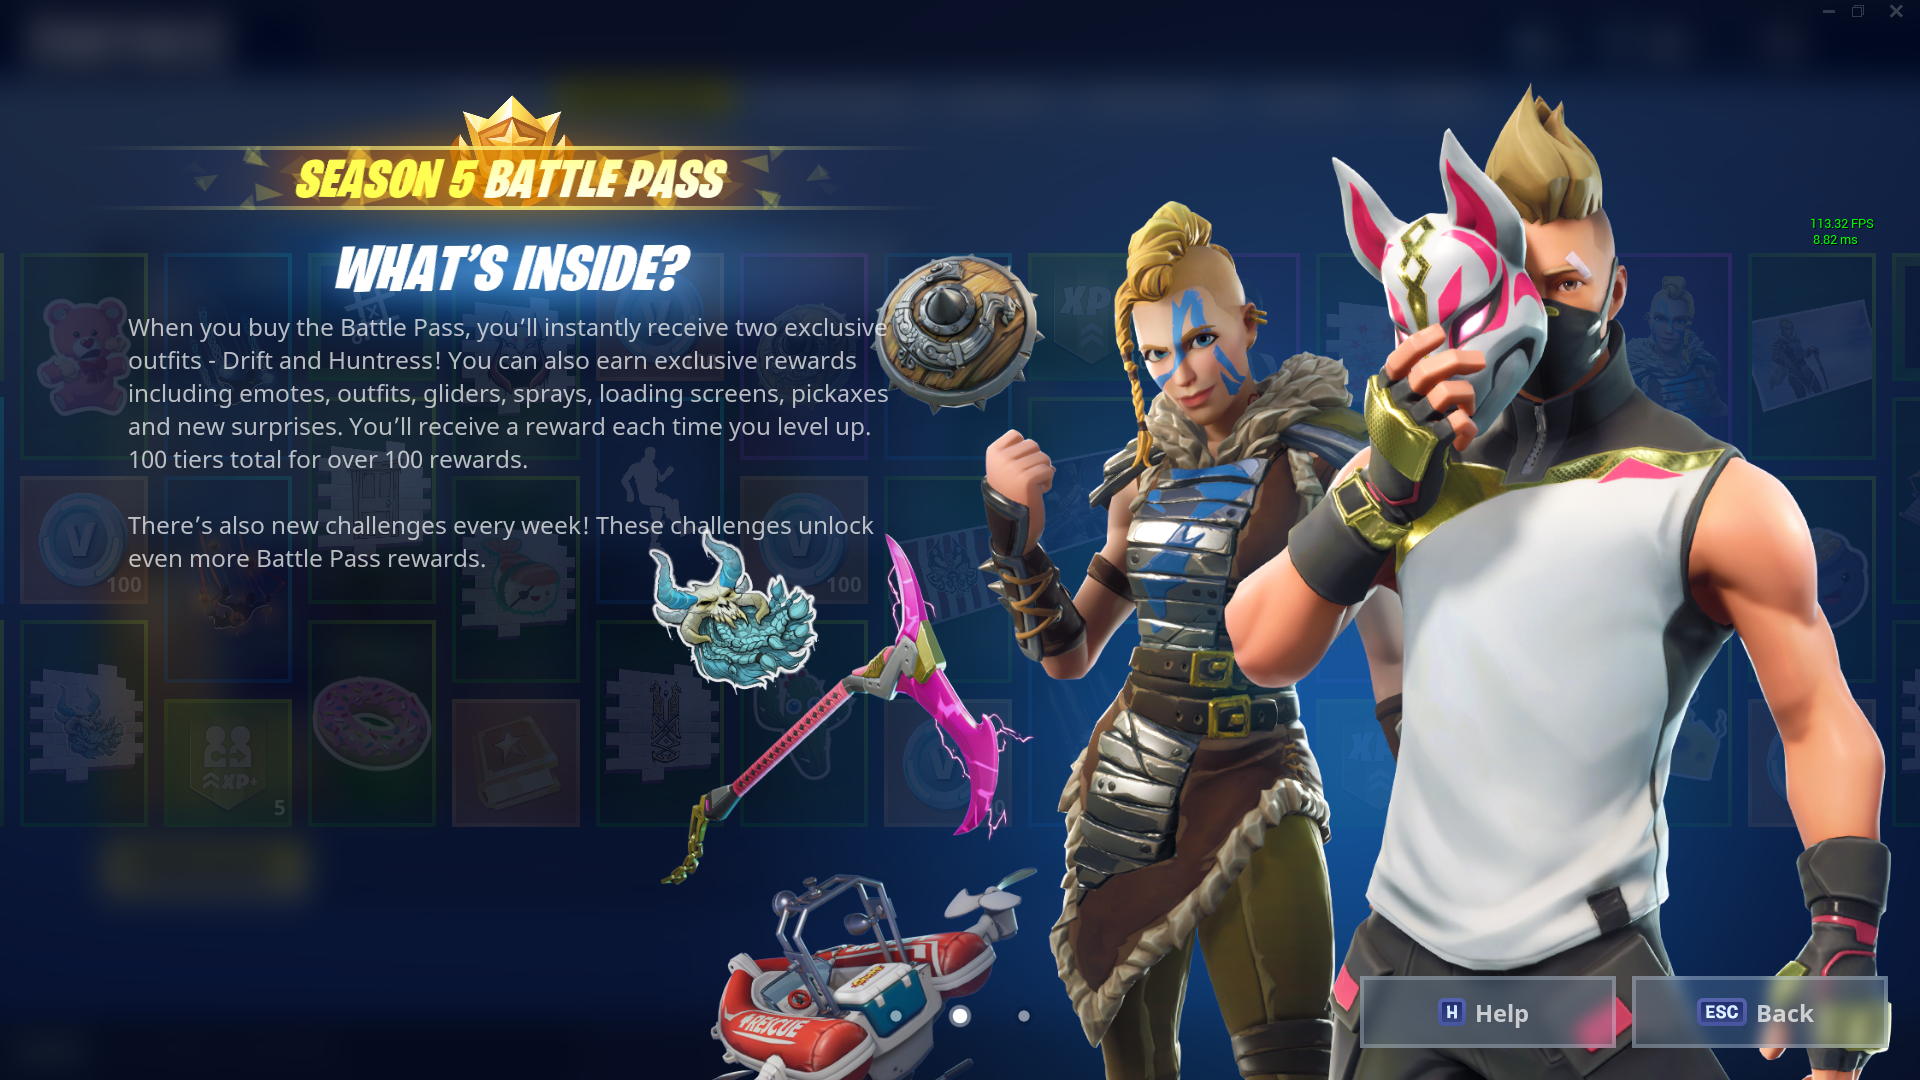 Fortnite Season 5 Battle Pass skins price details and more 1920x1080